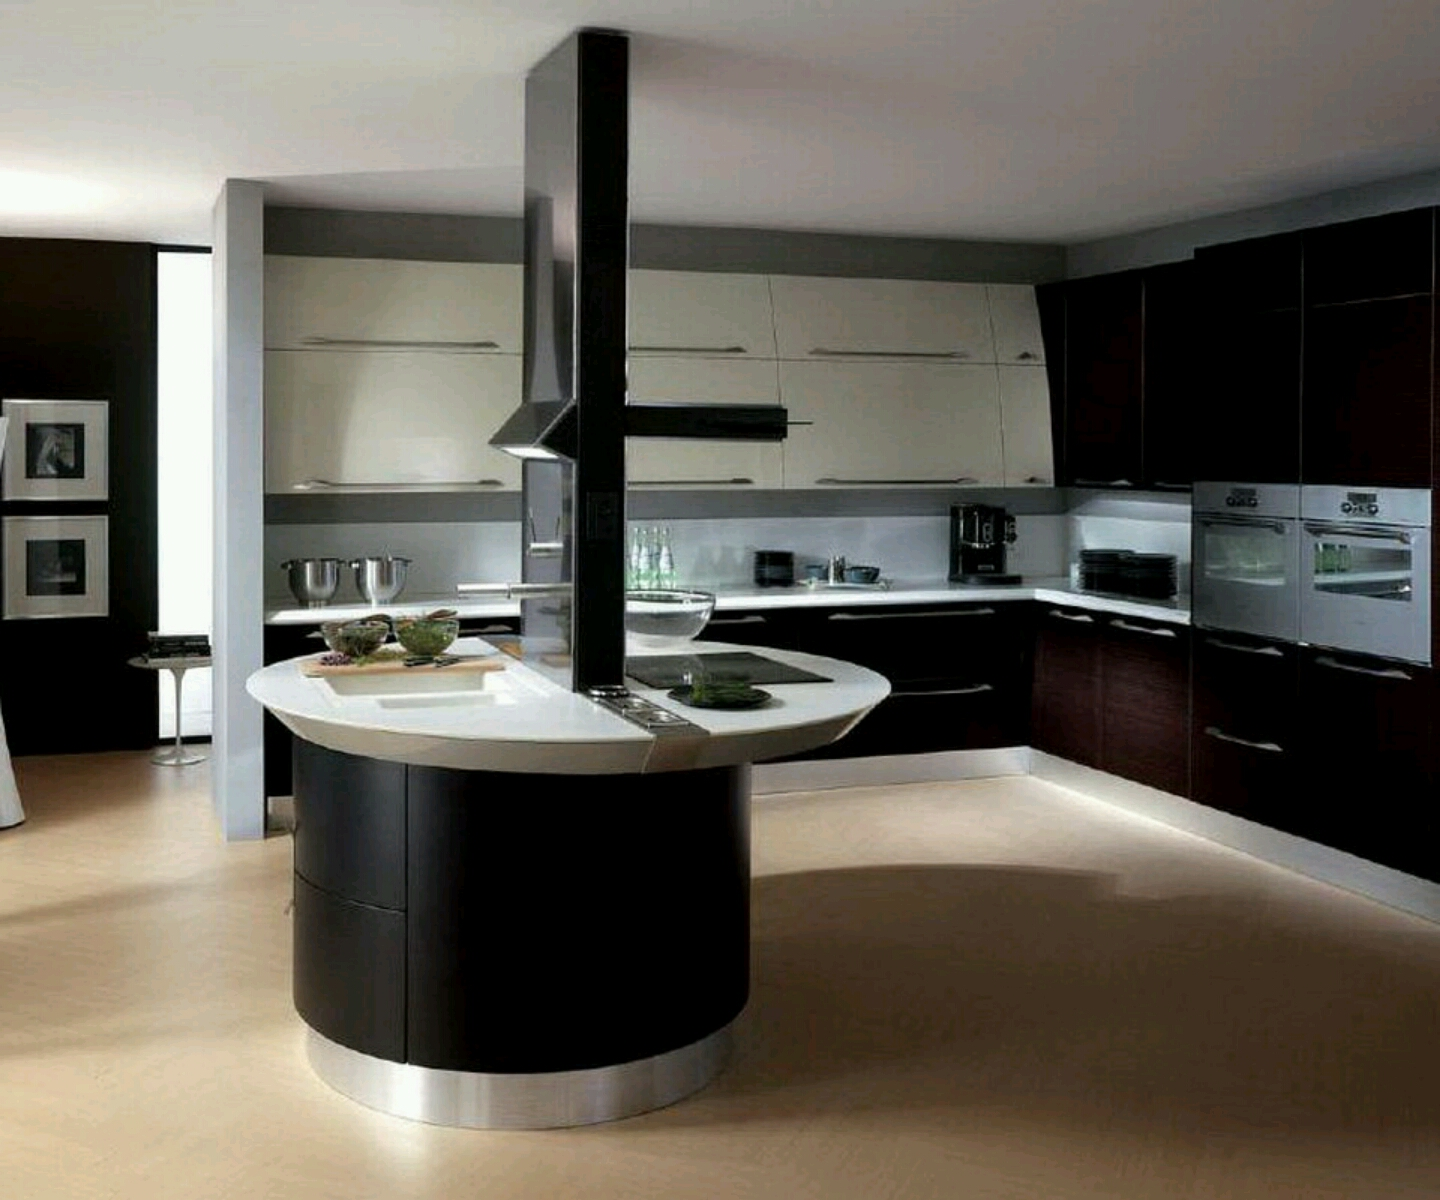 Modern kitchen cabinet design - Modern kitchen design photos ...